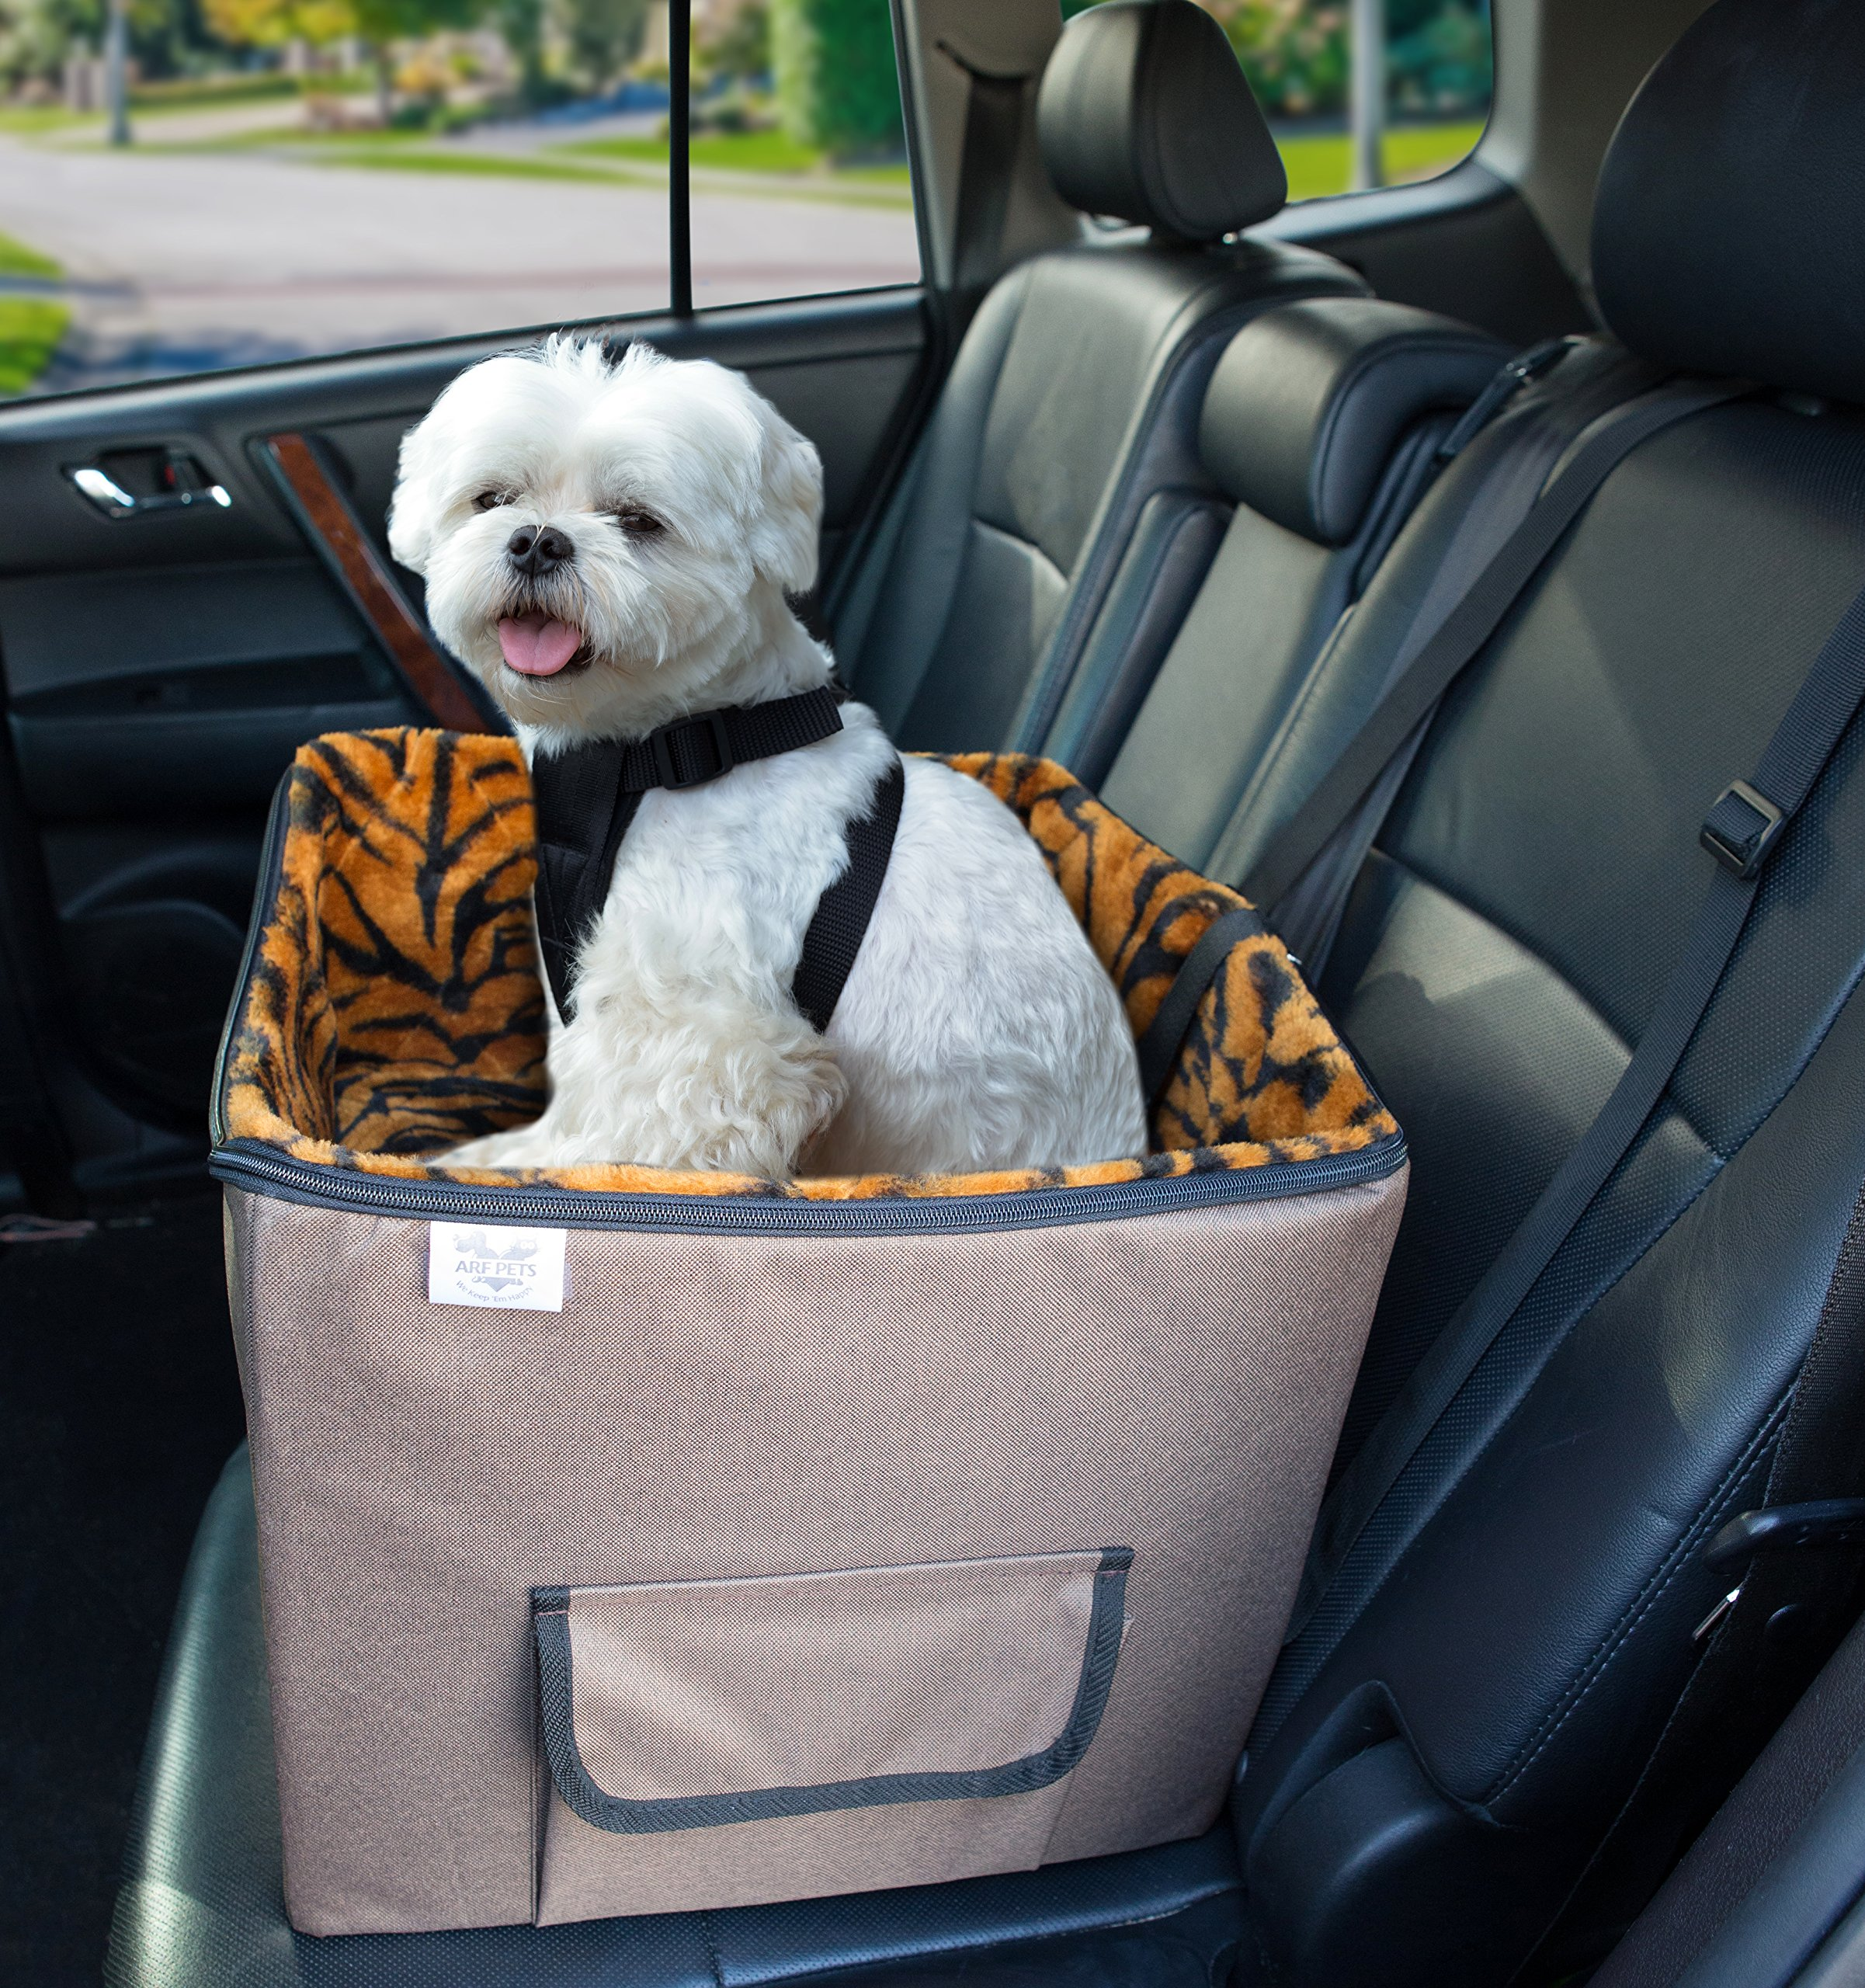 Arf Pets Pet Car Seat, Dog Booster Safety Seat with Adjustable Straps, Solid Foam Base, Includes Attached Tether Strap, Plush, Washable Lining by Arf Pets